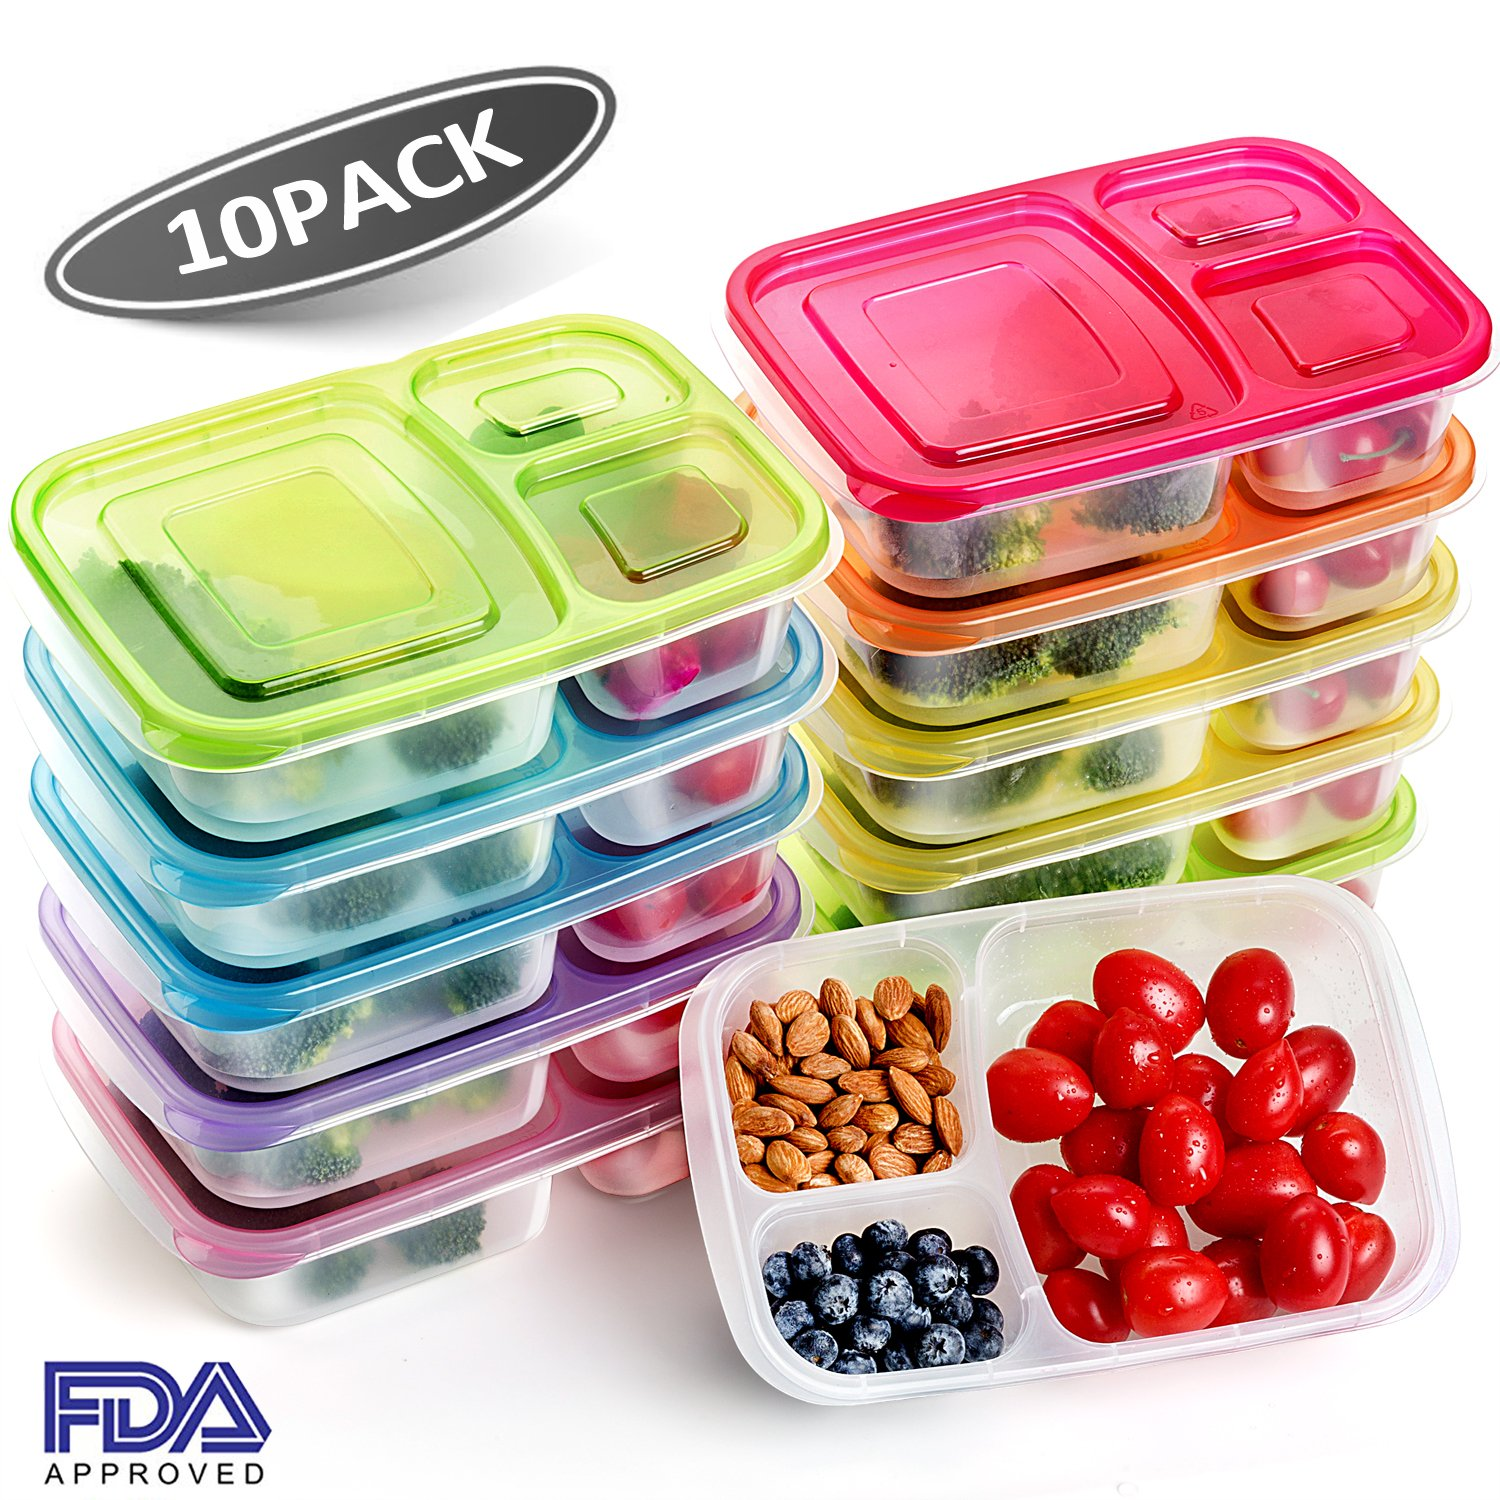 10 pack Meal Prep Containers Food Storage Lunch Boxes BPA Free Bento Lunch box Set with lids Leak Proof,Resuable,Stackable,Microwaveable,Freezer and Dishwasher Safe with Leak Proof Bag